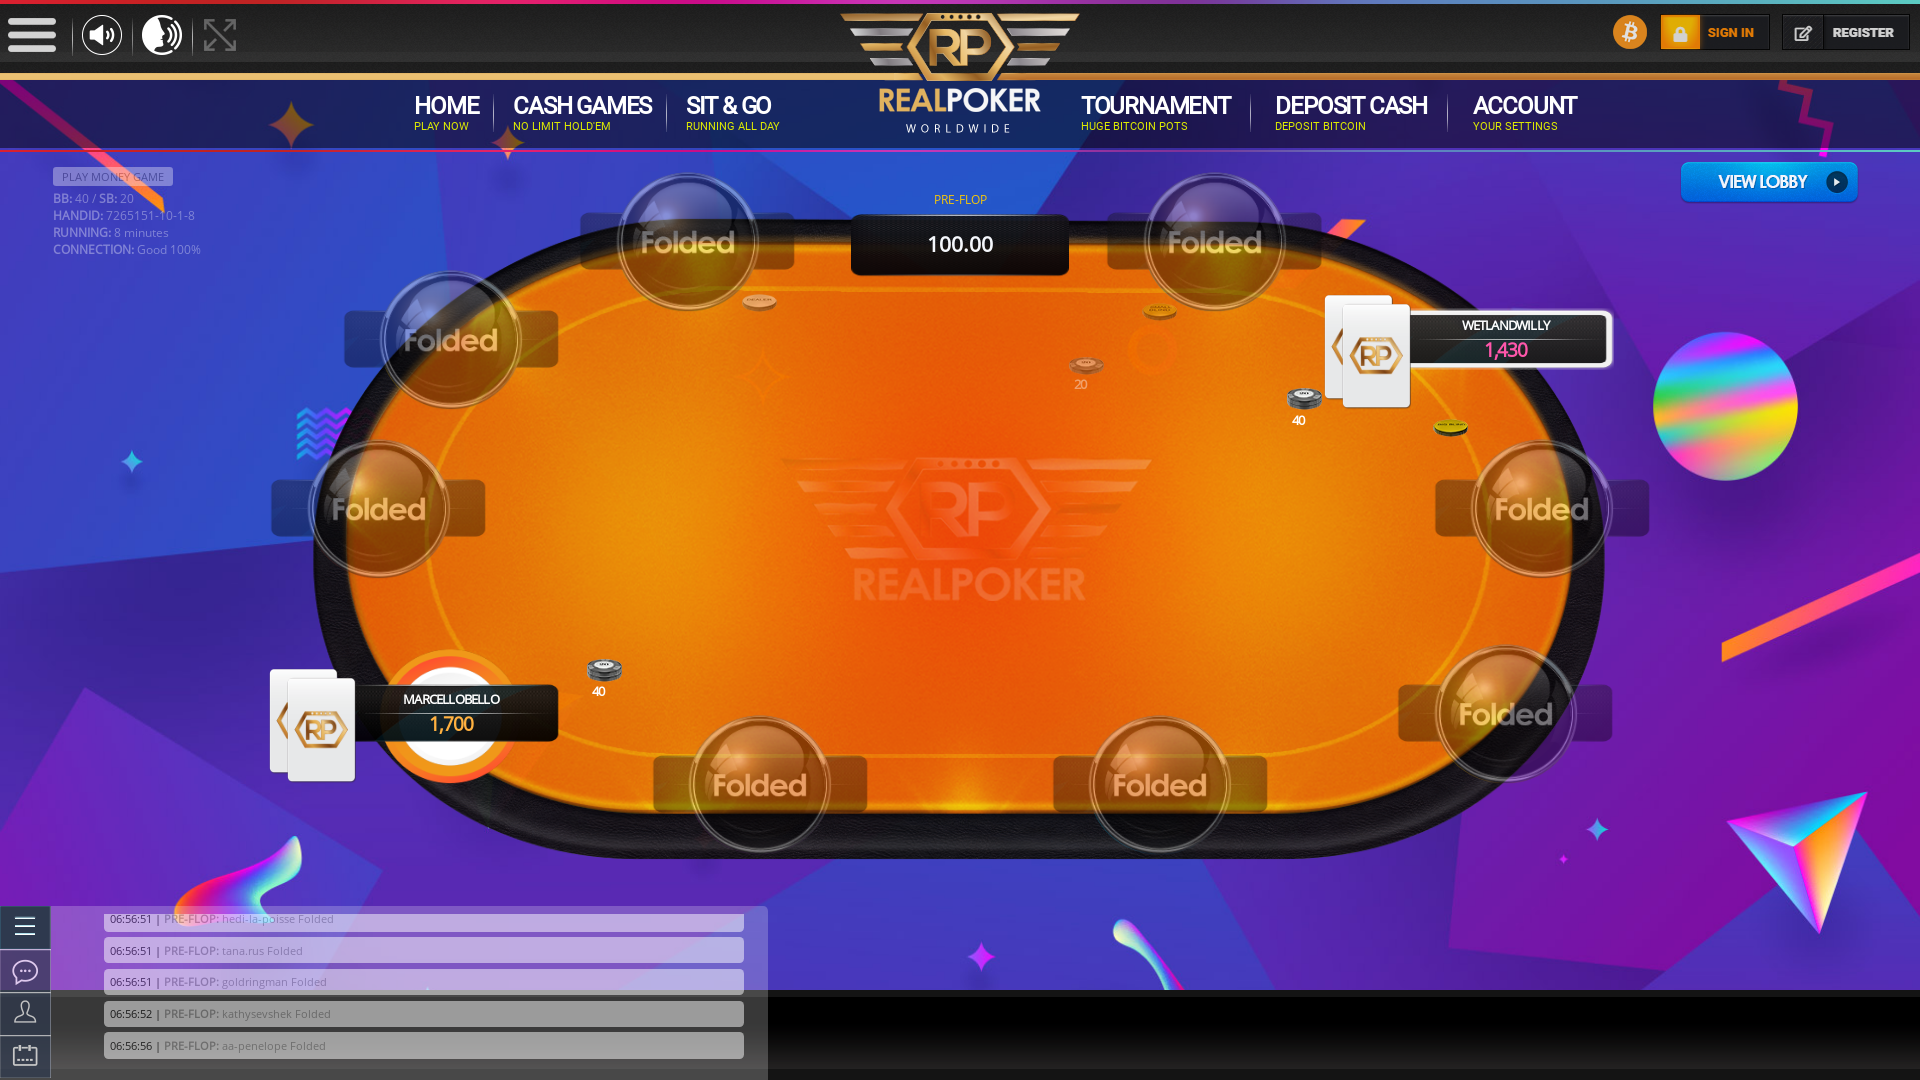 Ho Chi Minh City Casino Bitcoin Poker